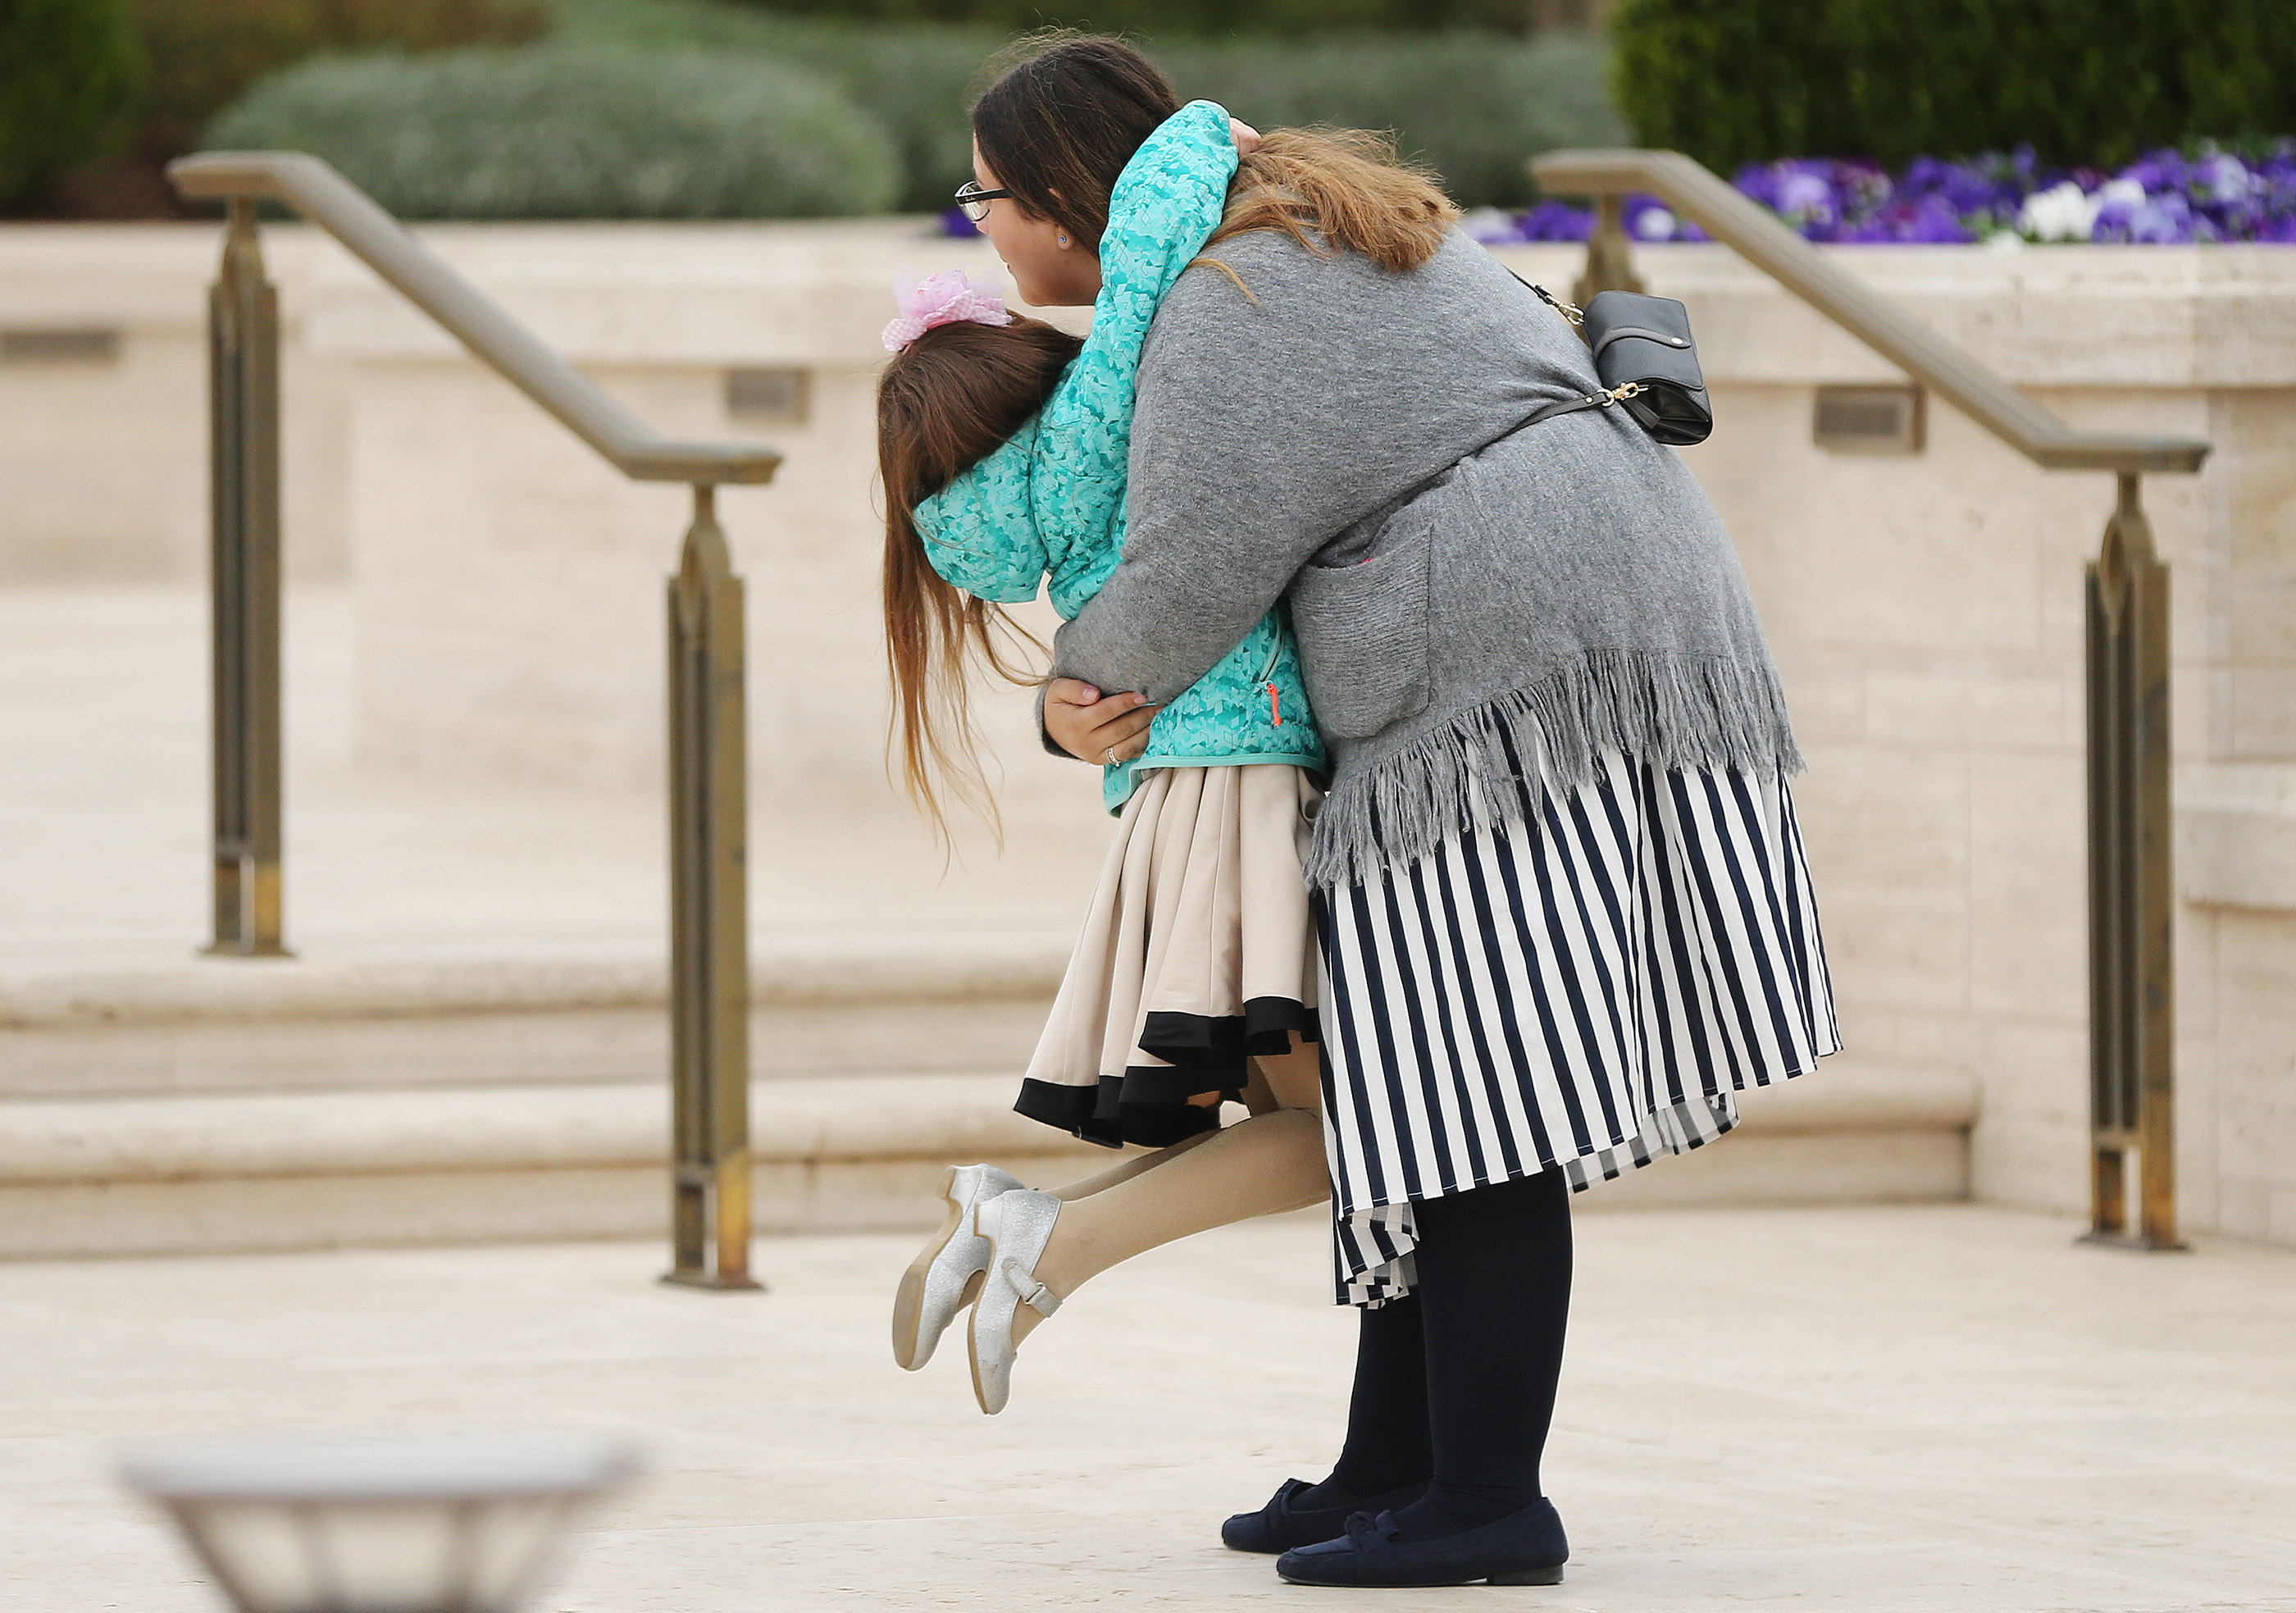 Emma Laura Celestini, left, hugs Eleonora Caravella outside the Rome Italy Temple during the building's first dedicatory session on Sunday, March 10, 2019.